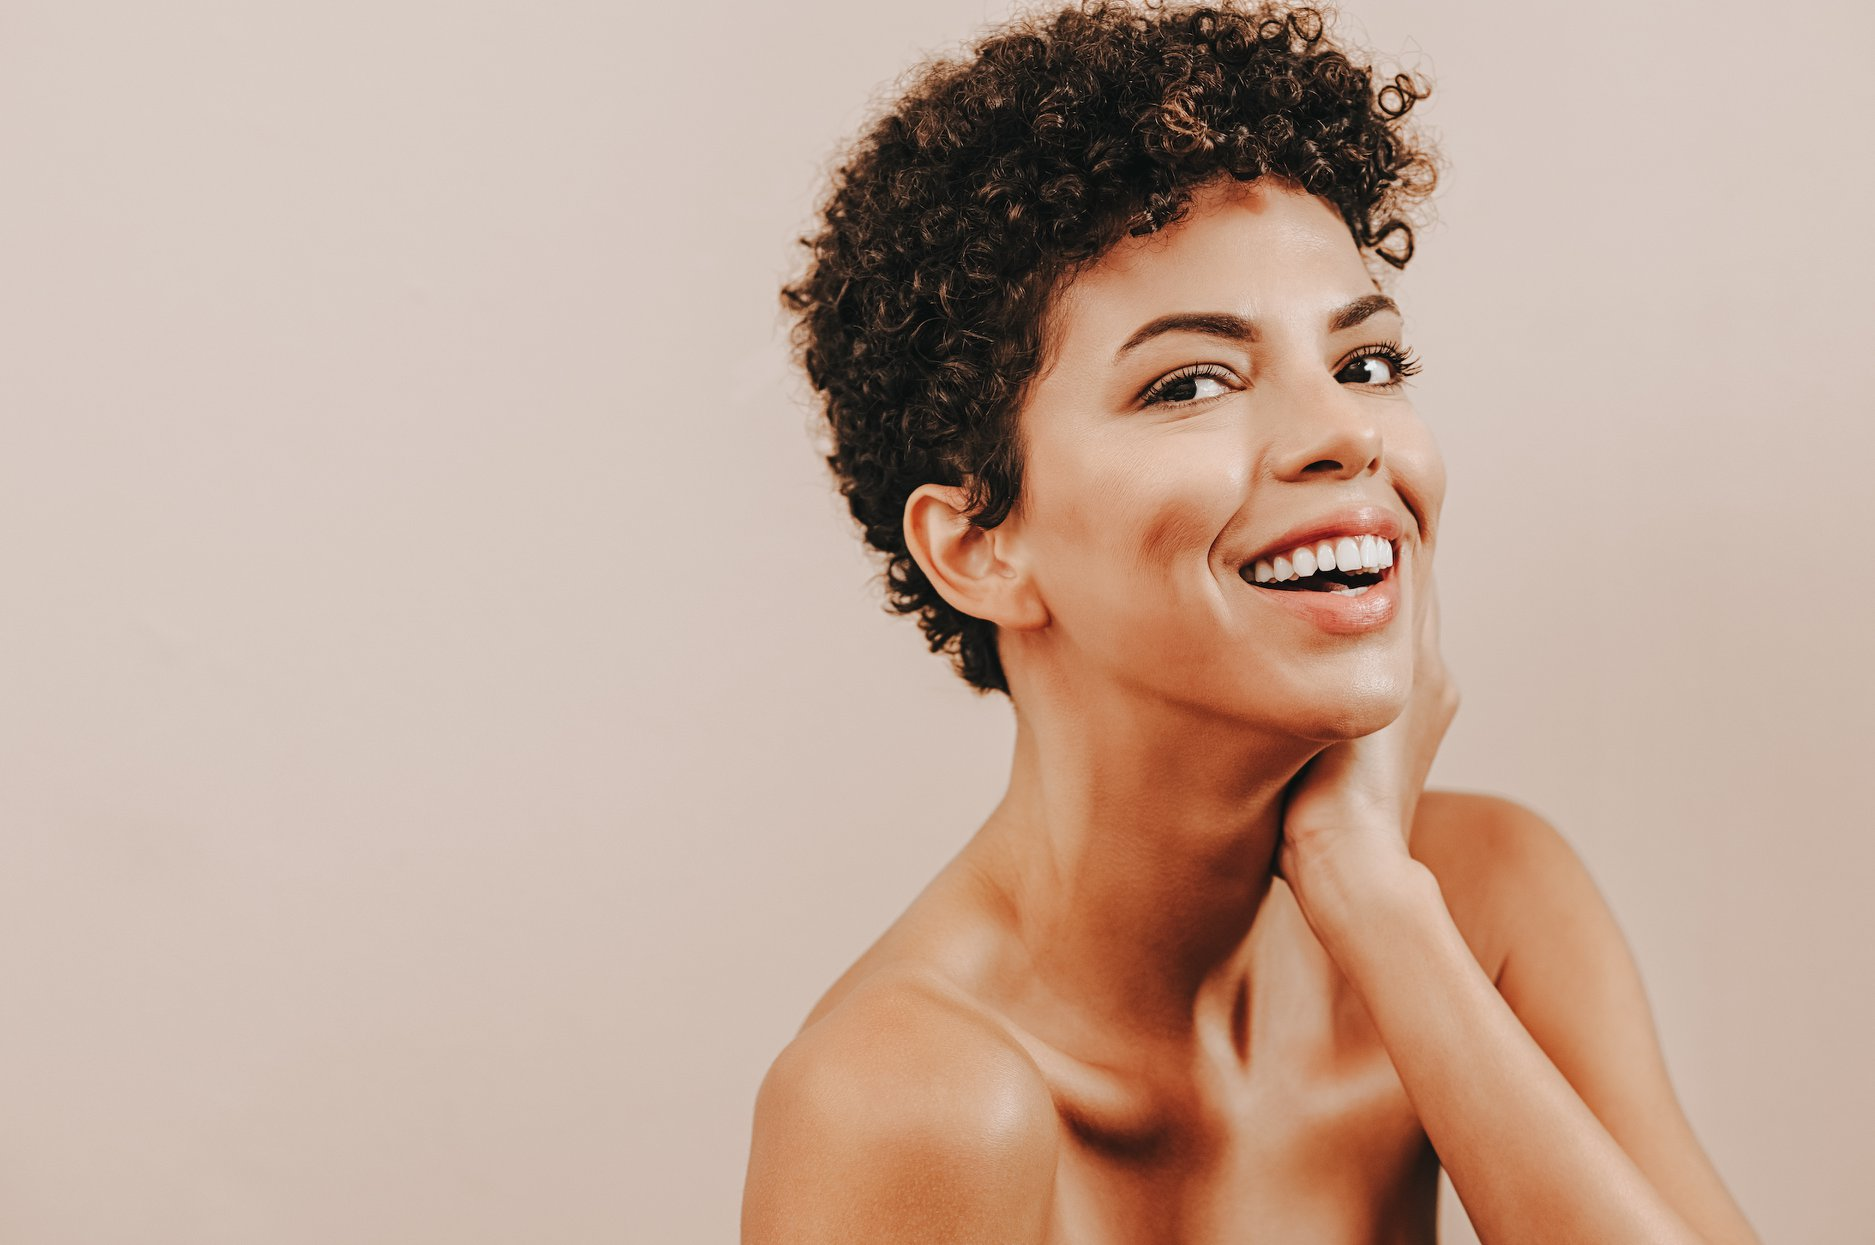 6 Tips For Glowing Skin